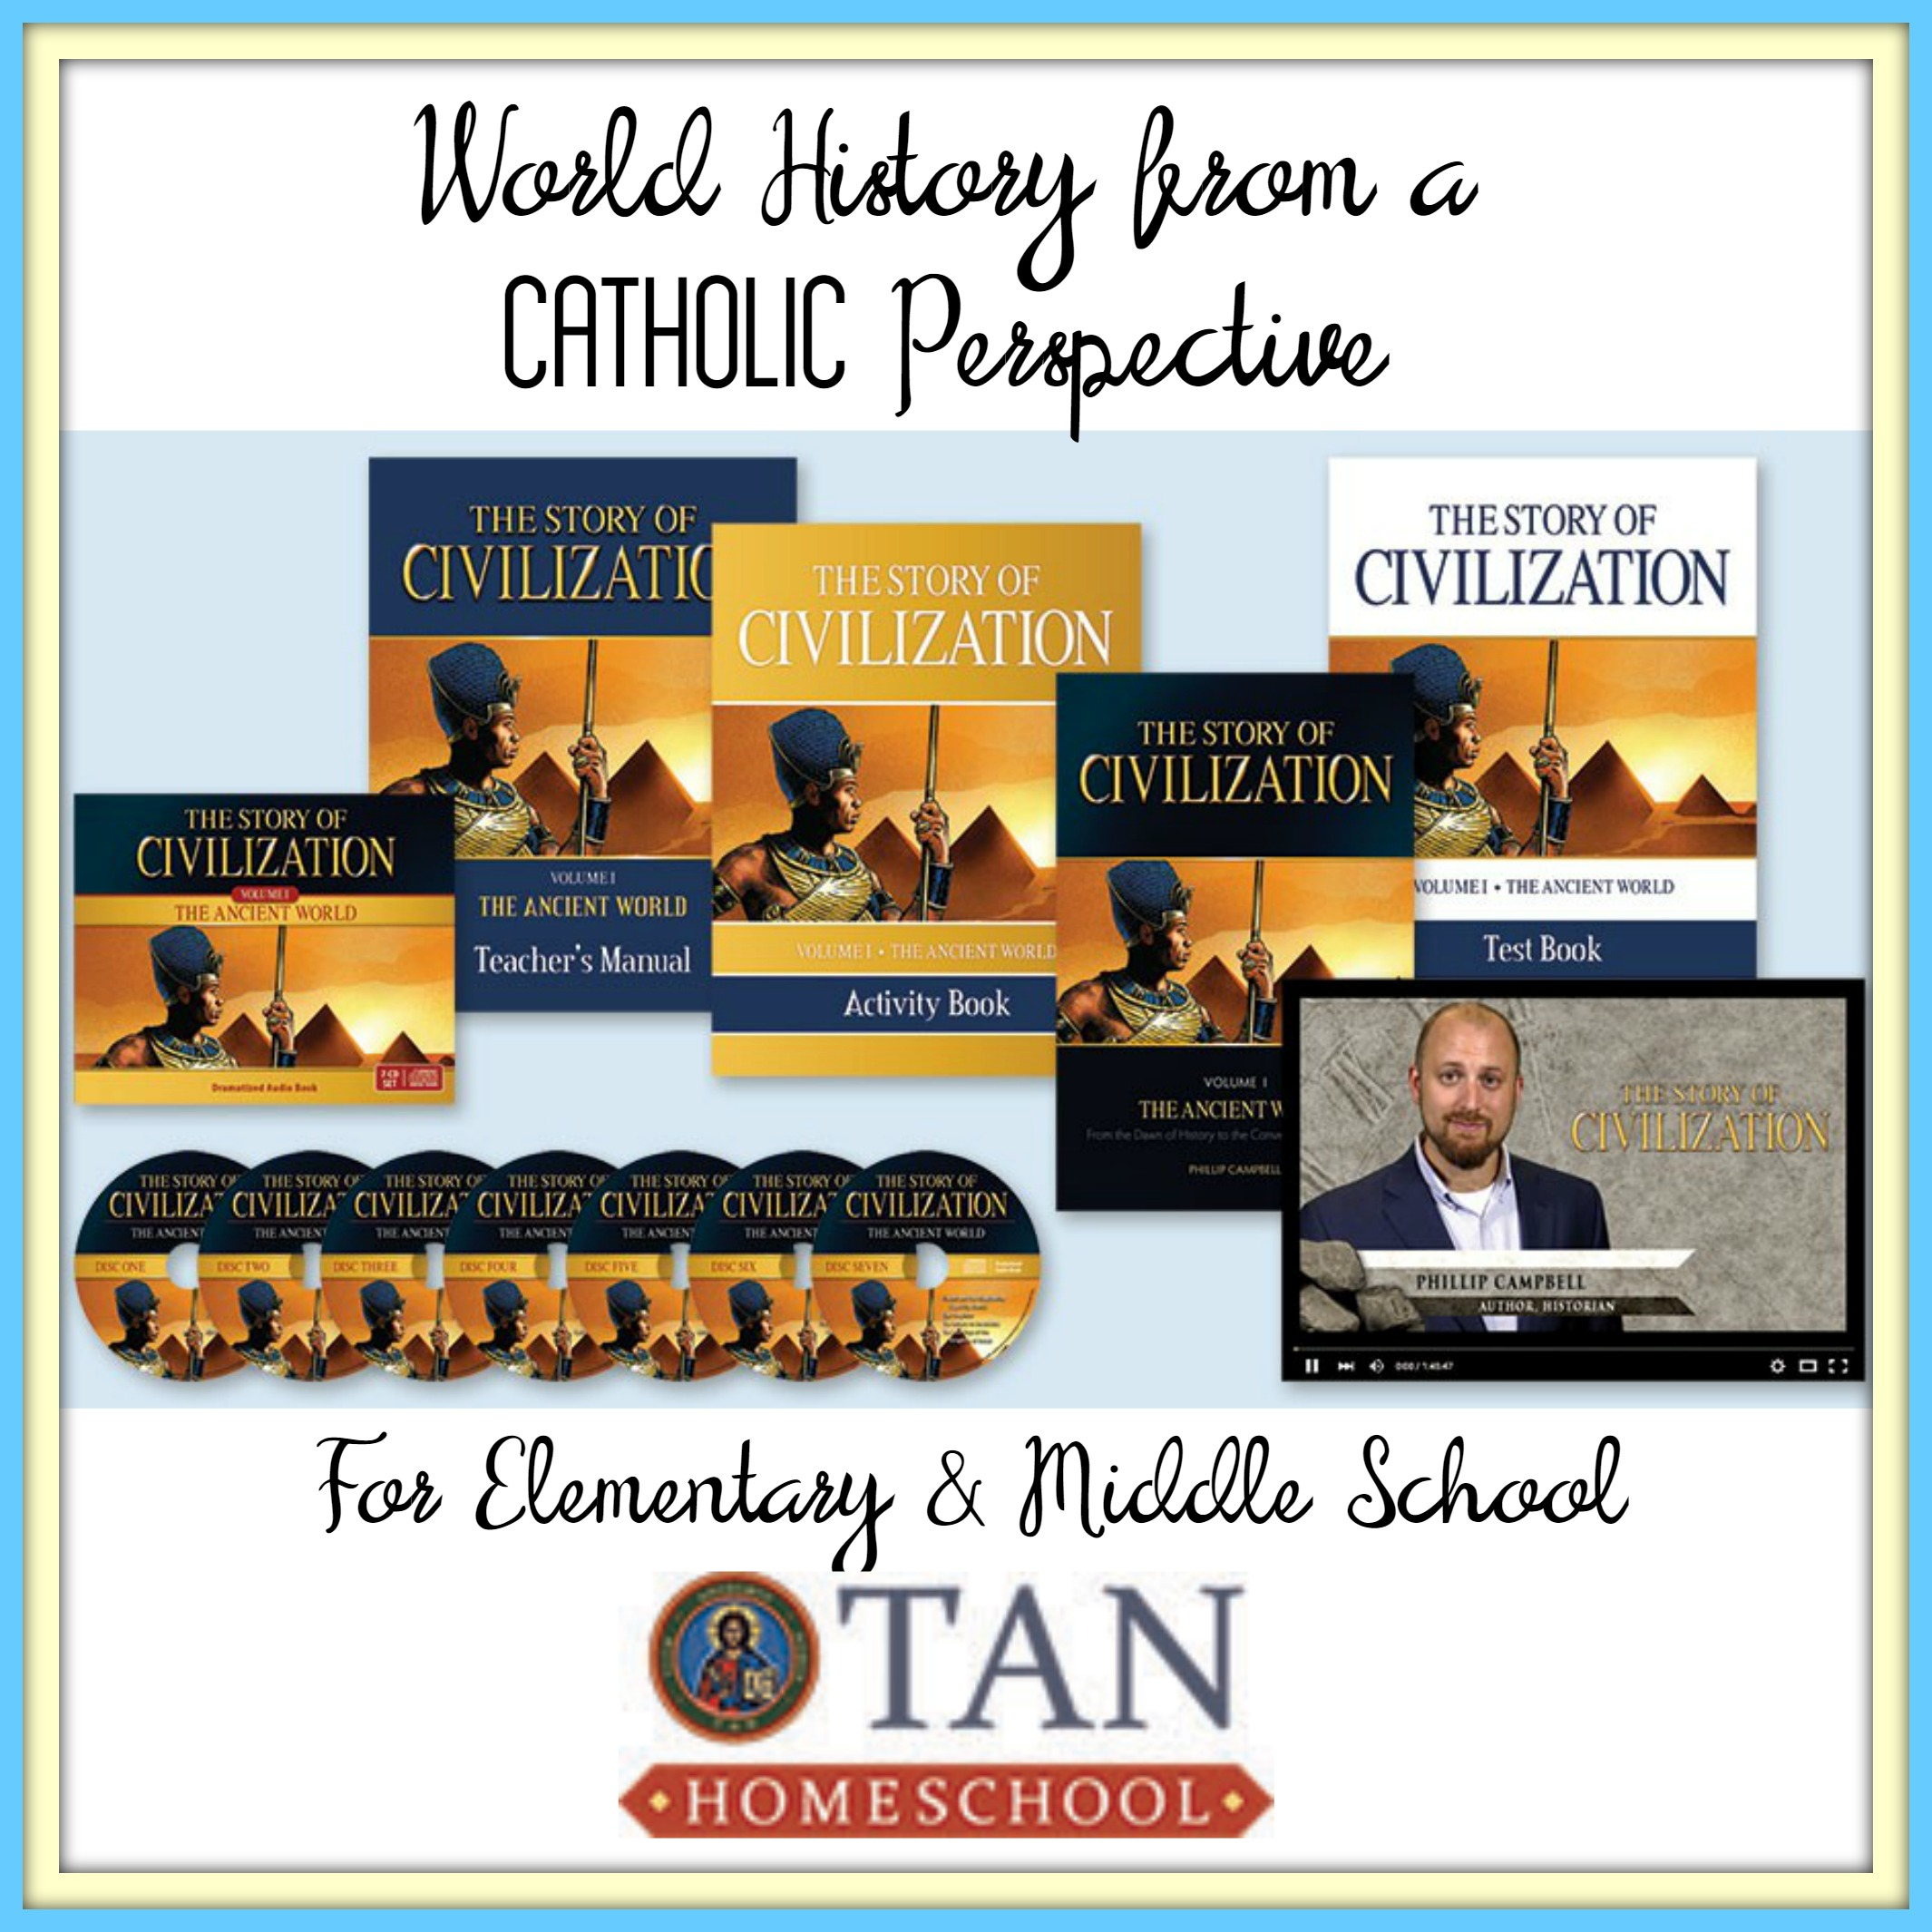 My Favorite Catholic History Curriculum For Elementary New From